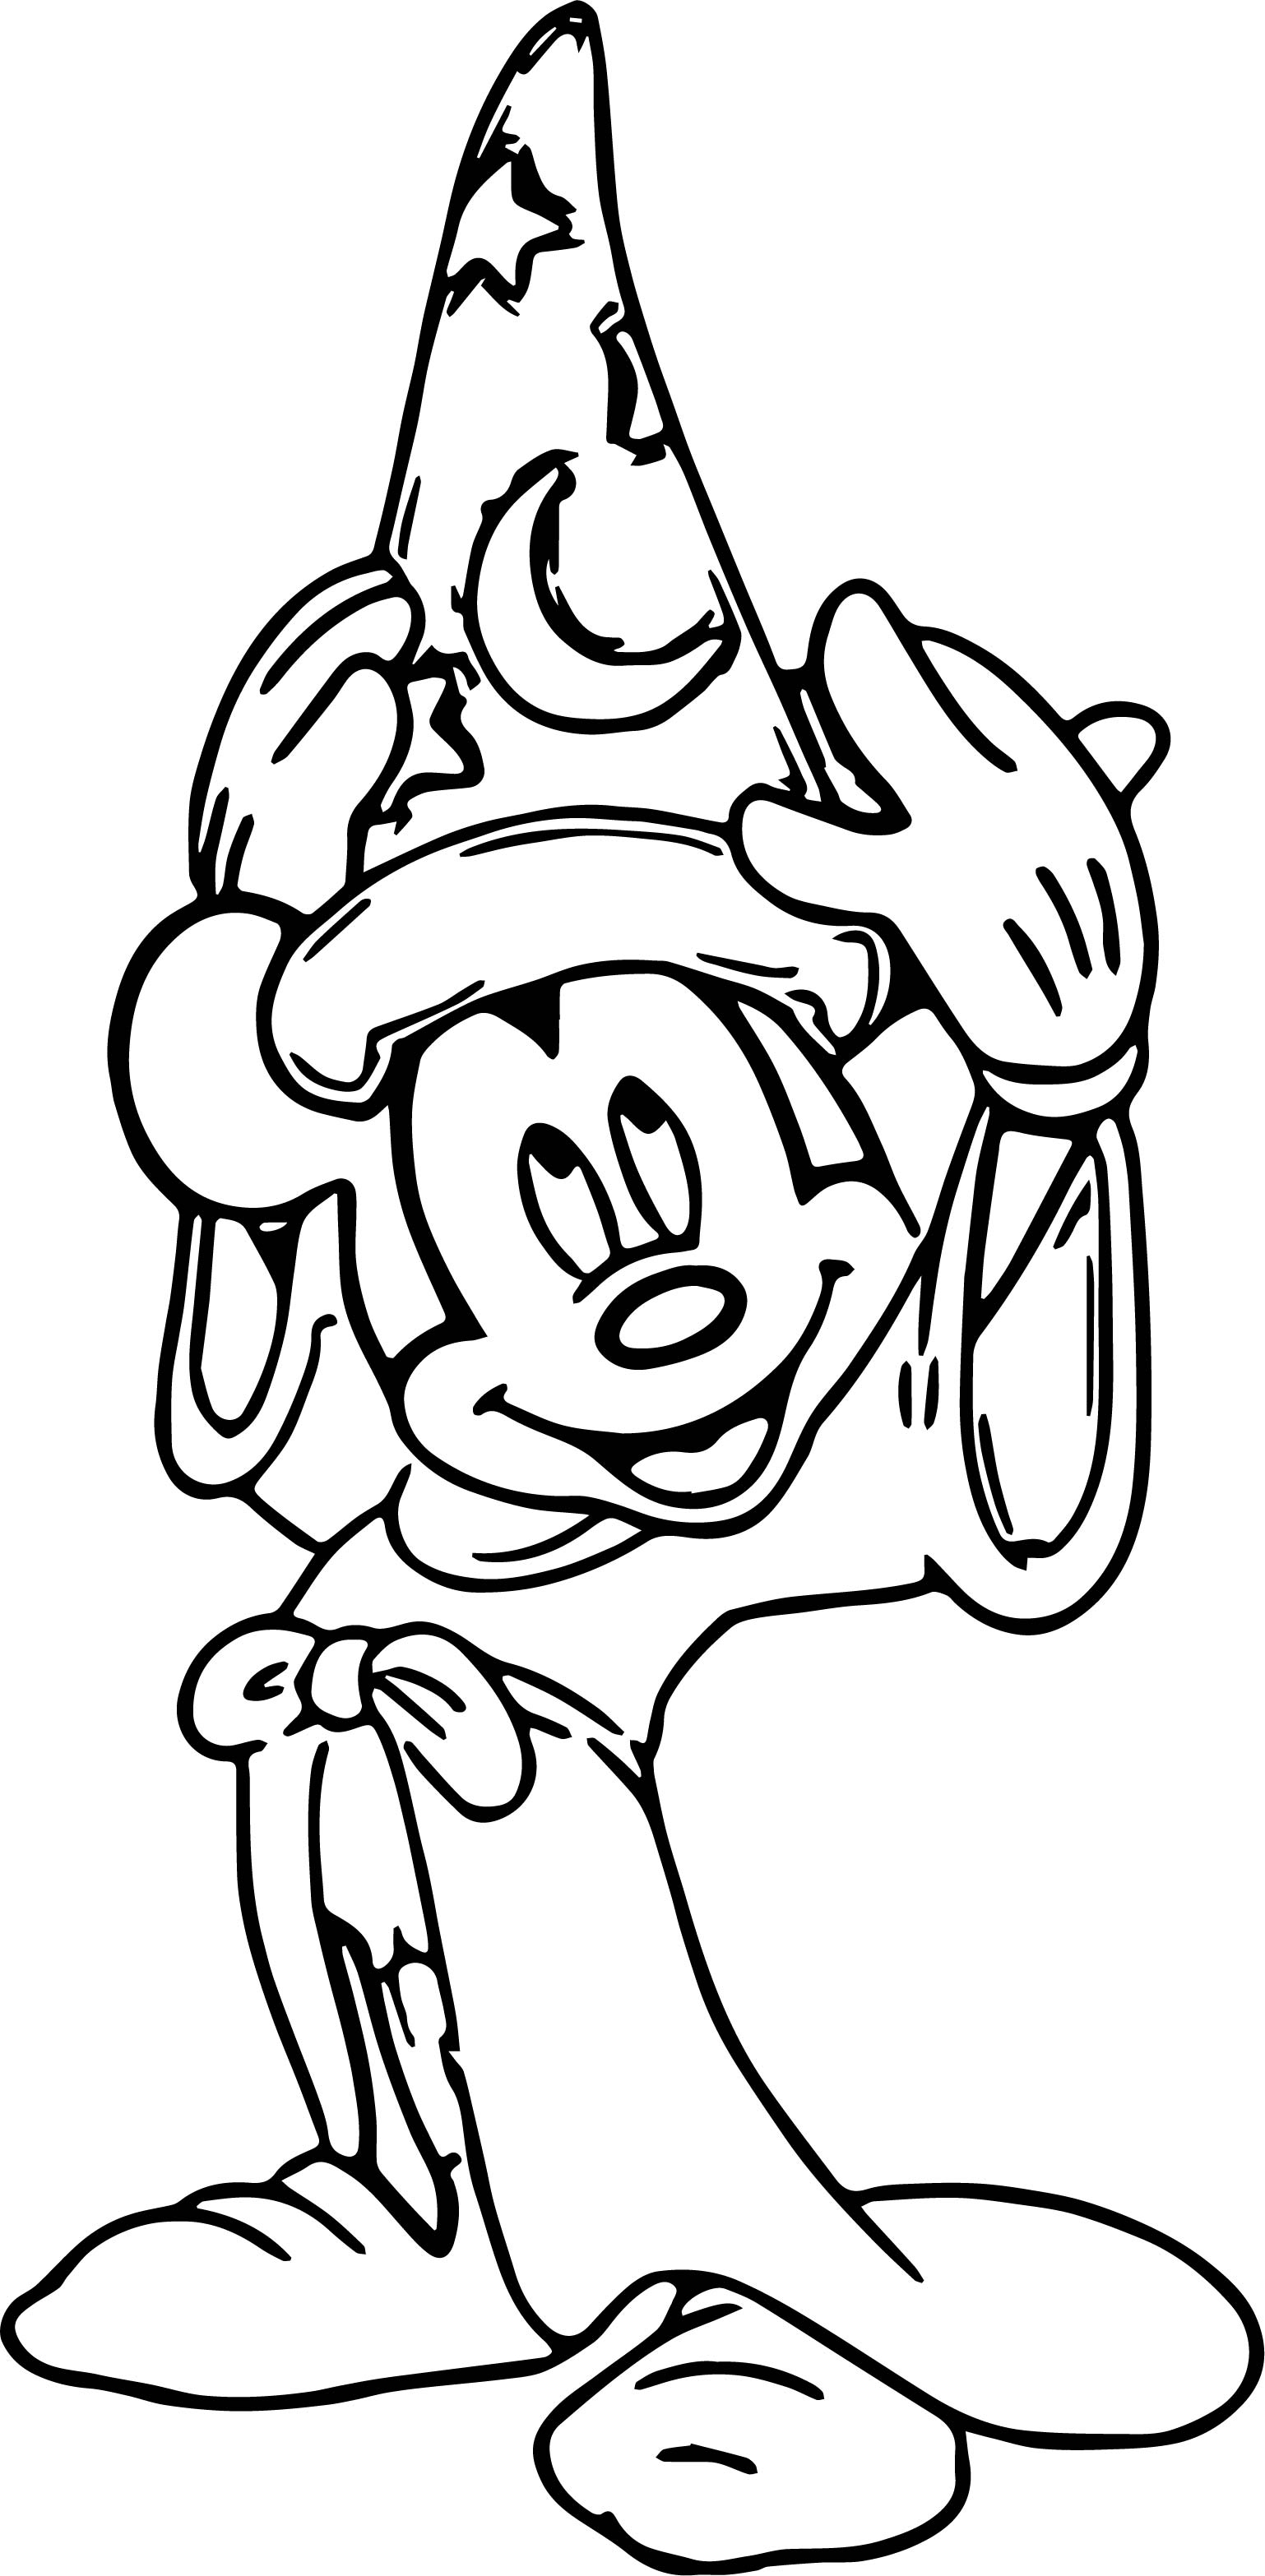 1538x3133 Magic Mickey Mouse Hat Coloring Pages Wecoloringpage